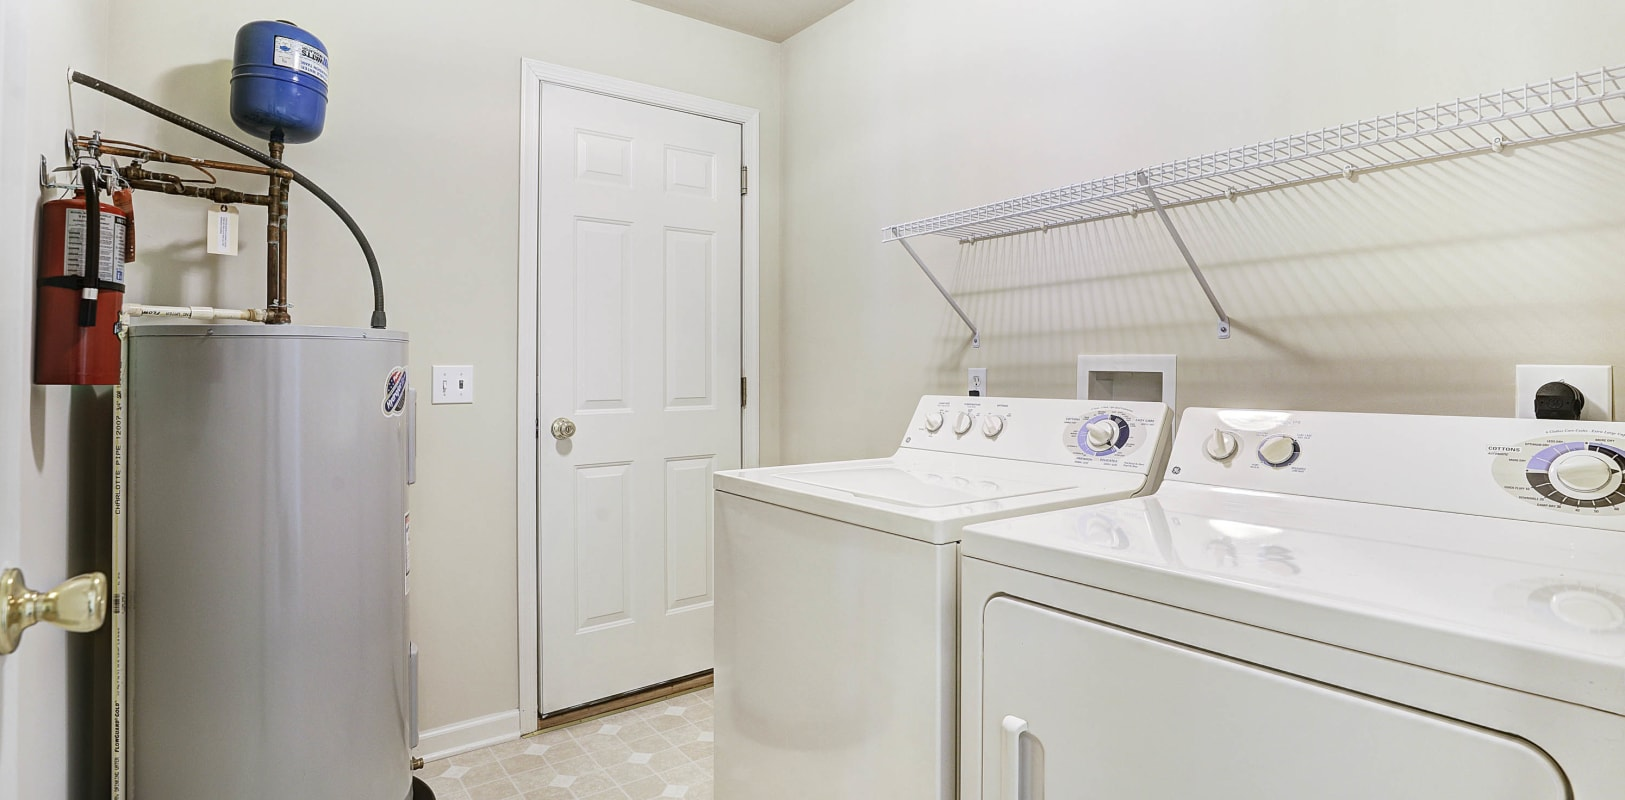 Full-size in-unit washer and dryer and water heater in a model home's laundry room at Hanover Glen in Bethlehem, Pennsylvania